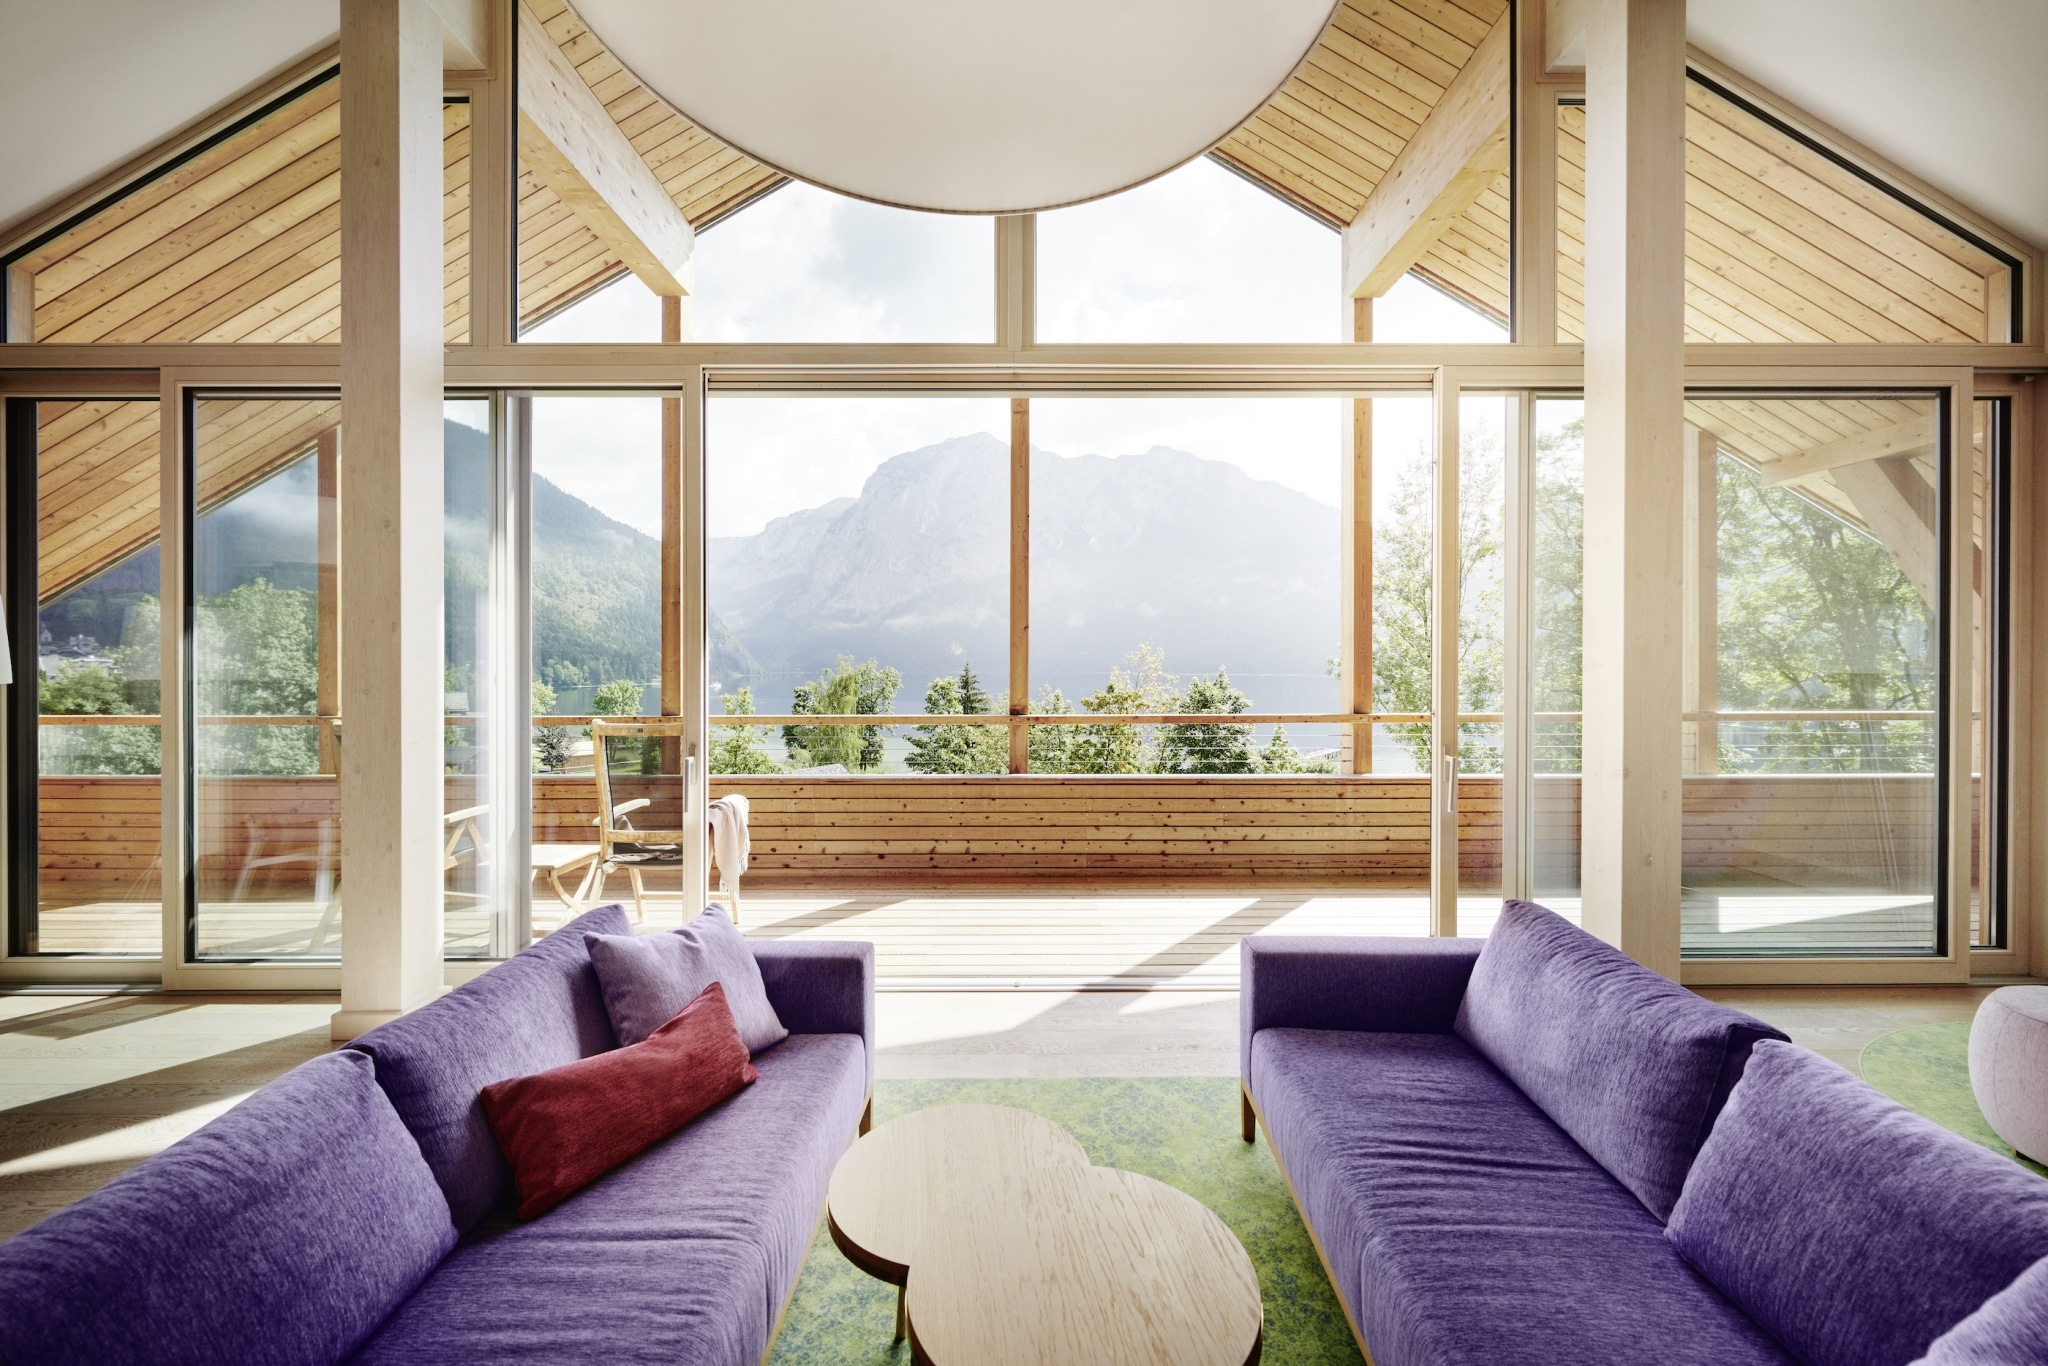 Penthouse at VIVAMAYR Altaussee with the Styrian mountains in the background